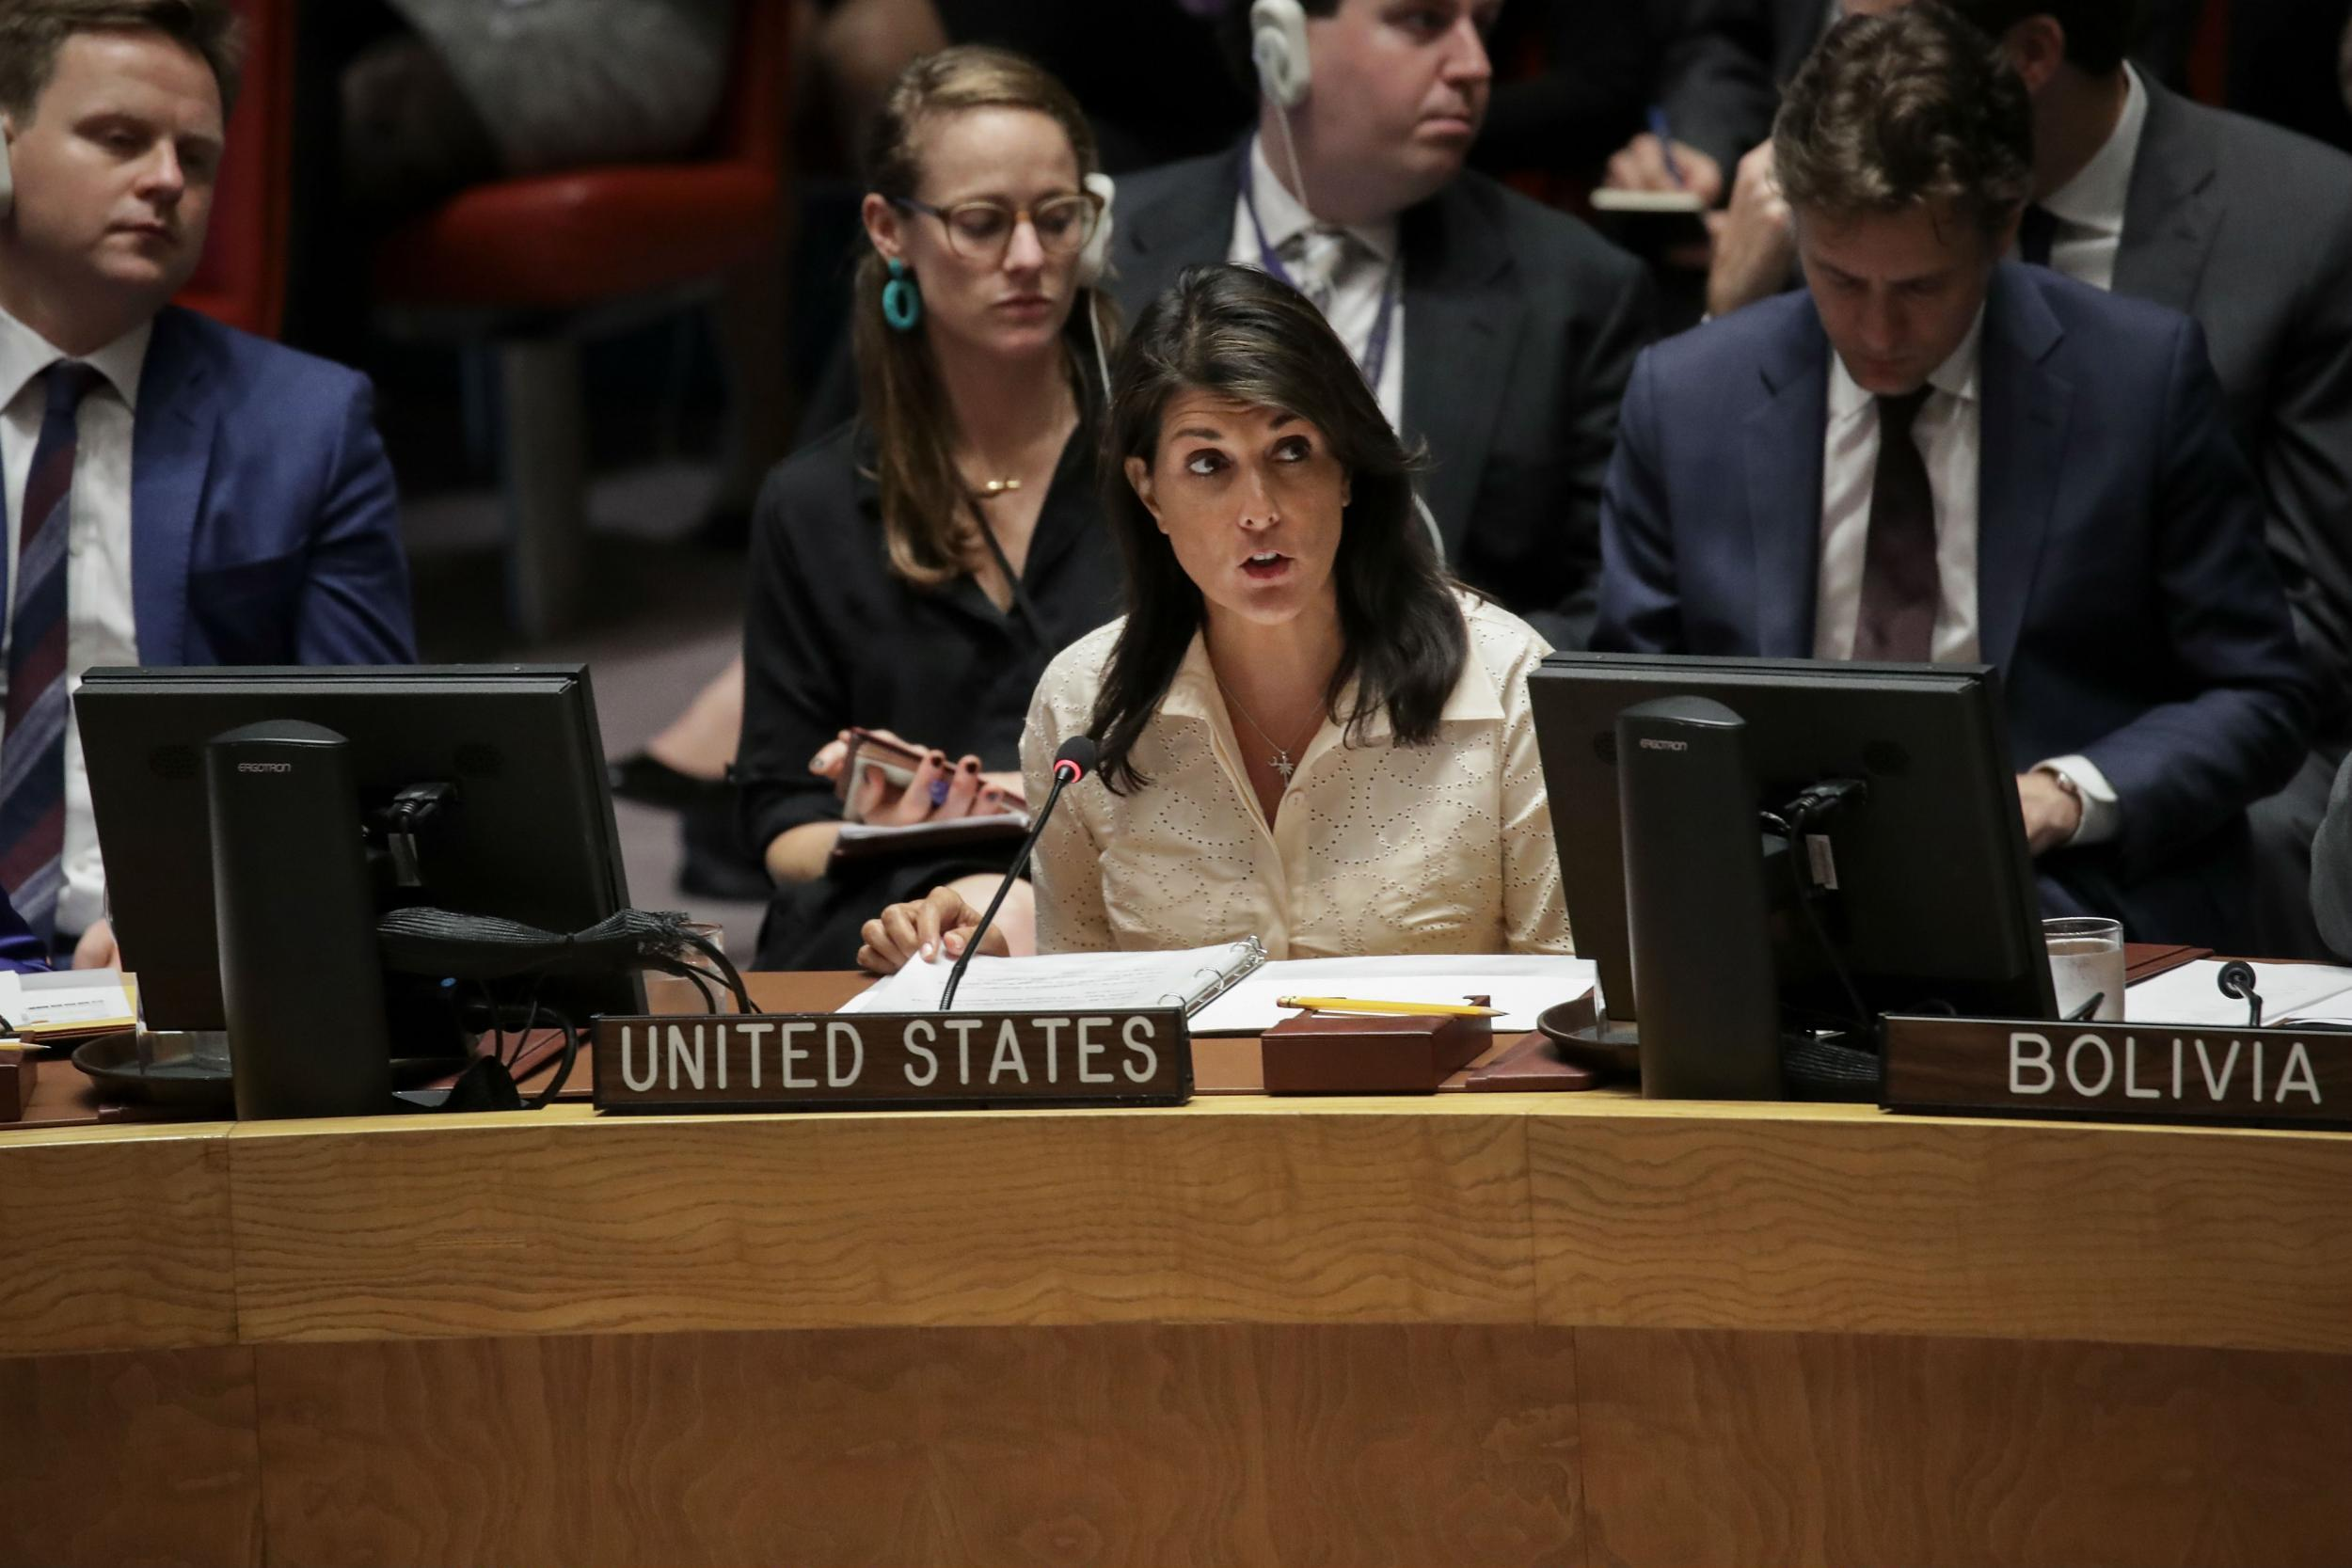 US Ambassador Nikki Haley tells UN 'no country in this chamber would act with more restraint than Israel has'